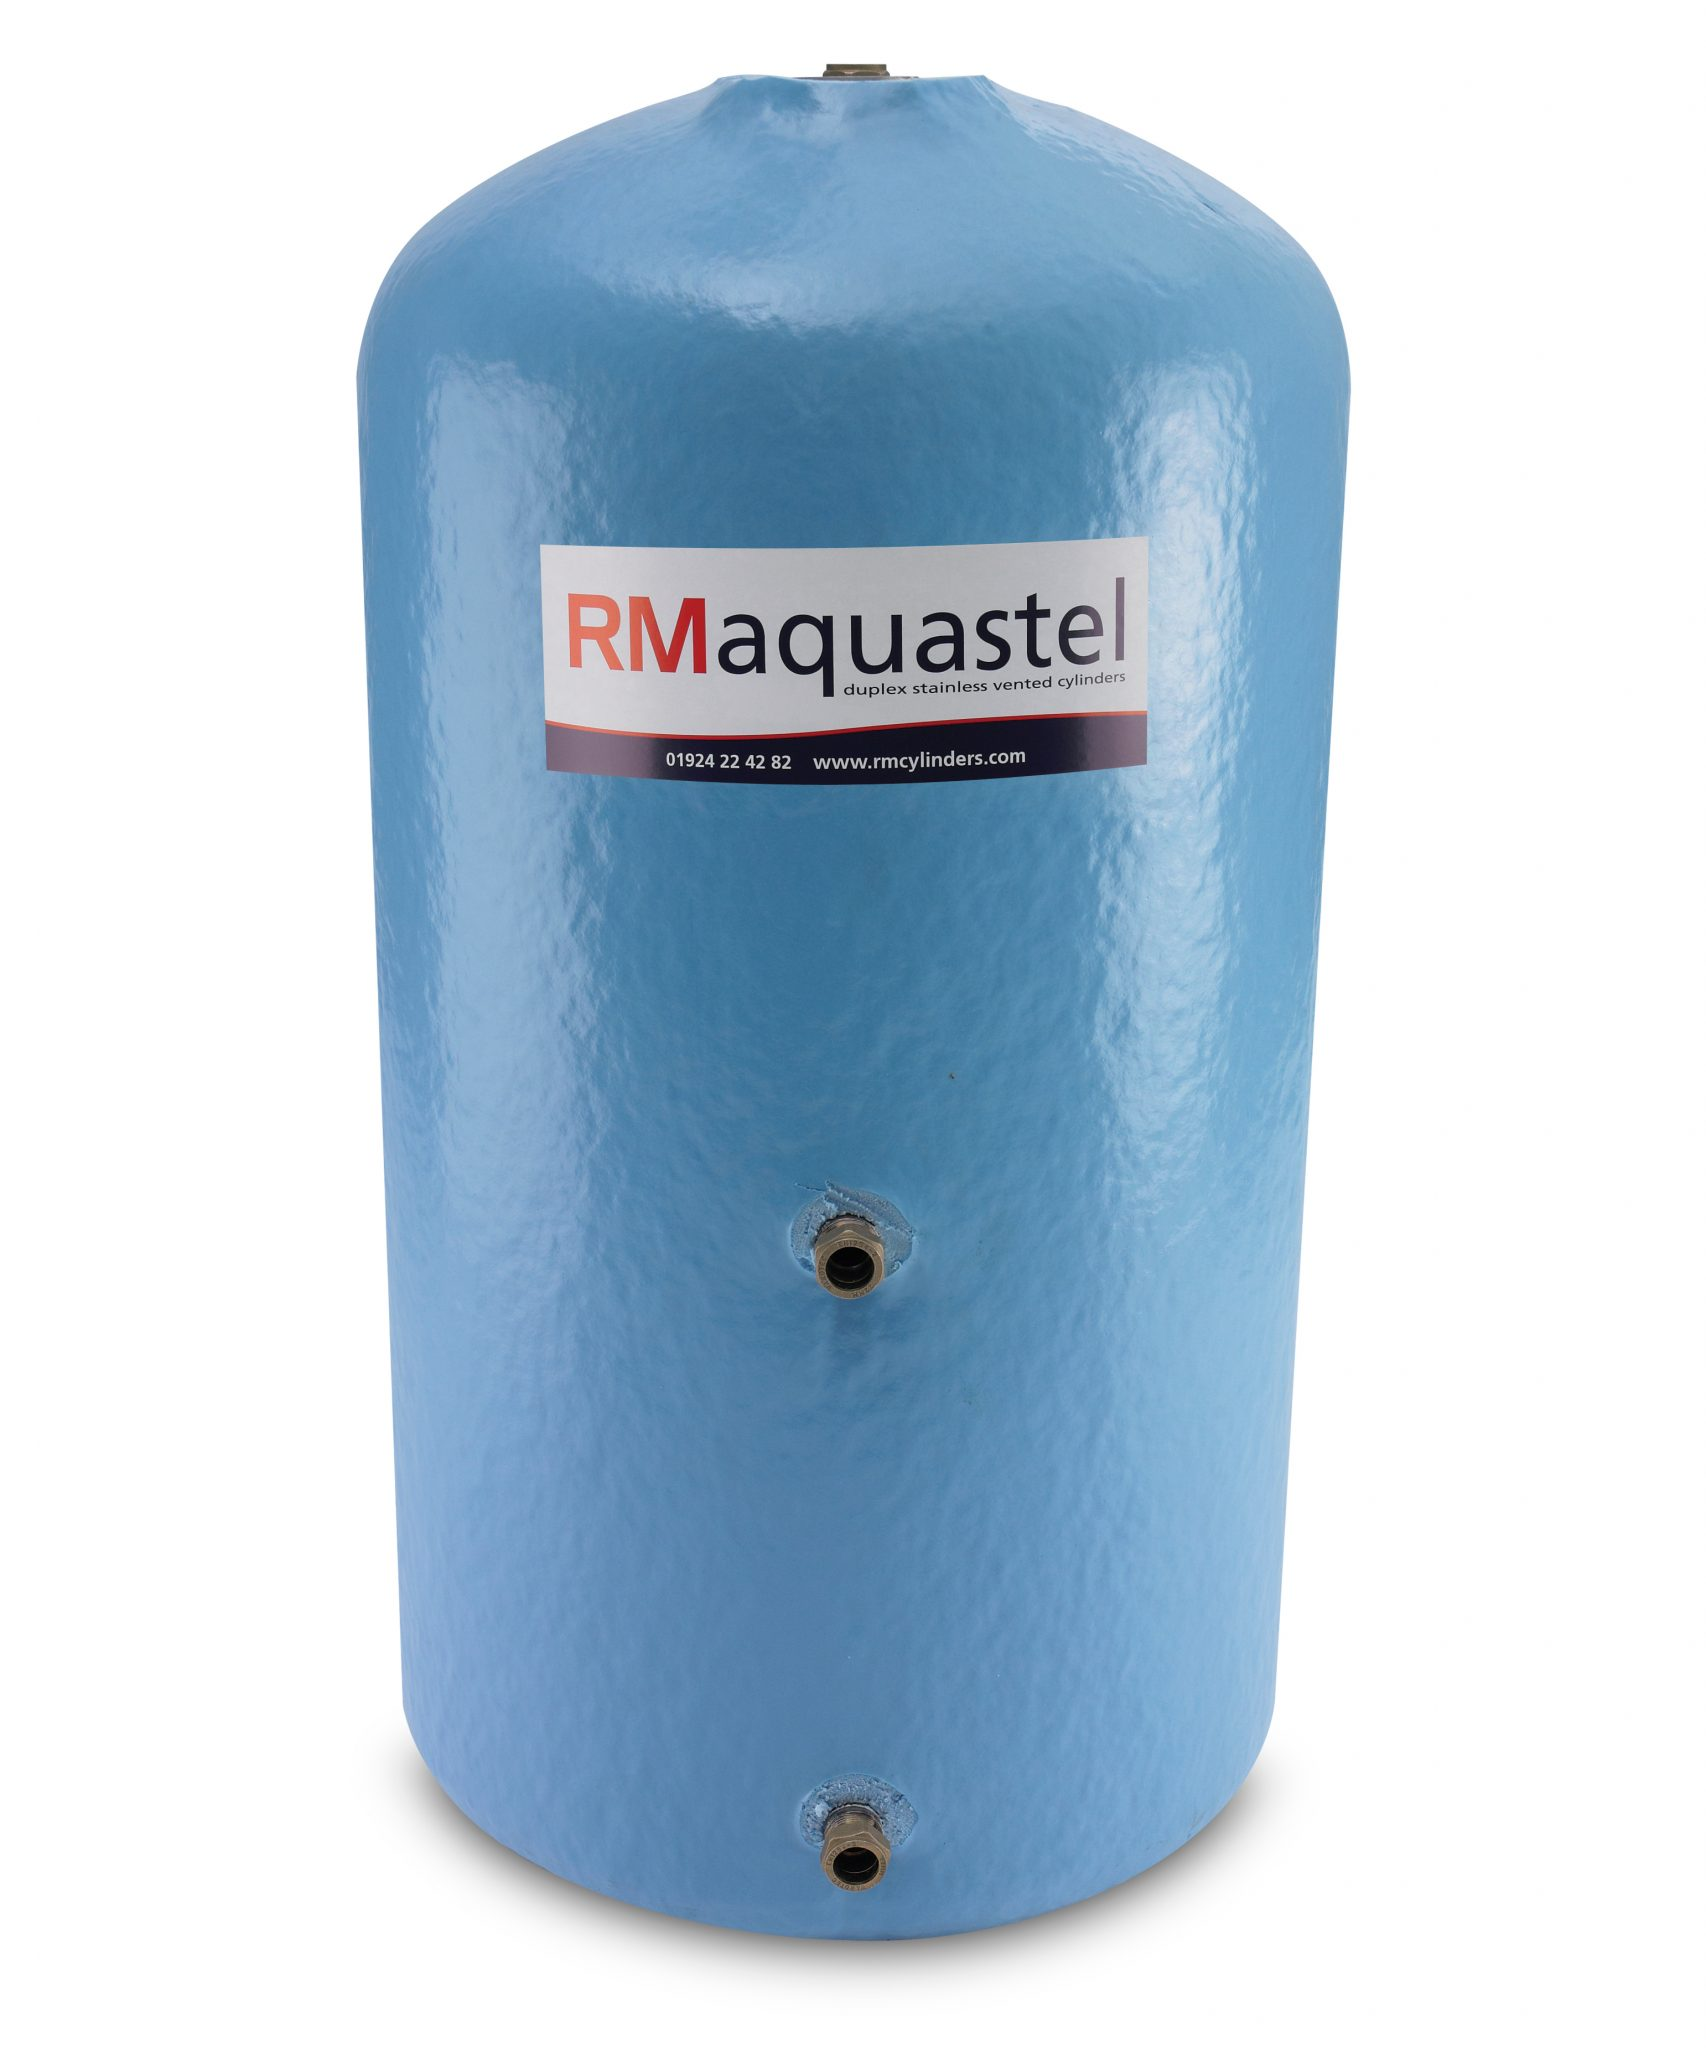 RM Aquastel 375 Vented Indirect Duplex Stainless Steel Cylinder ...